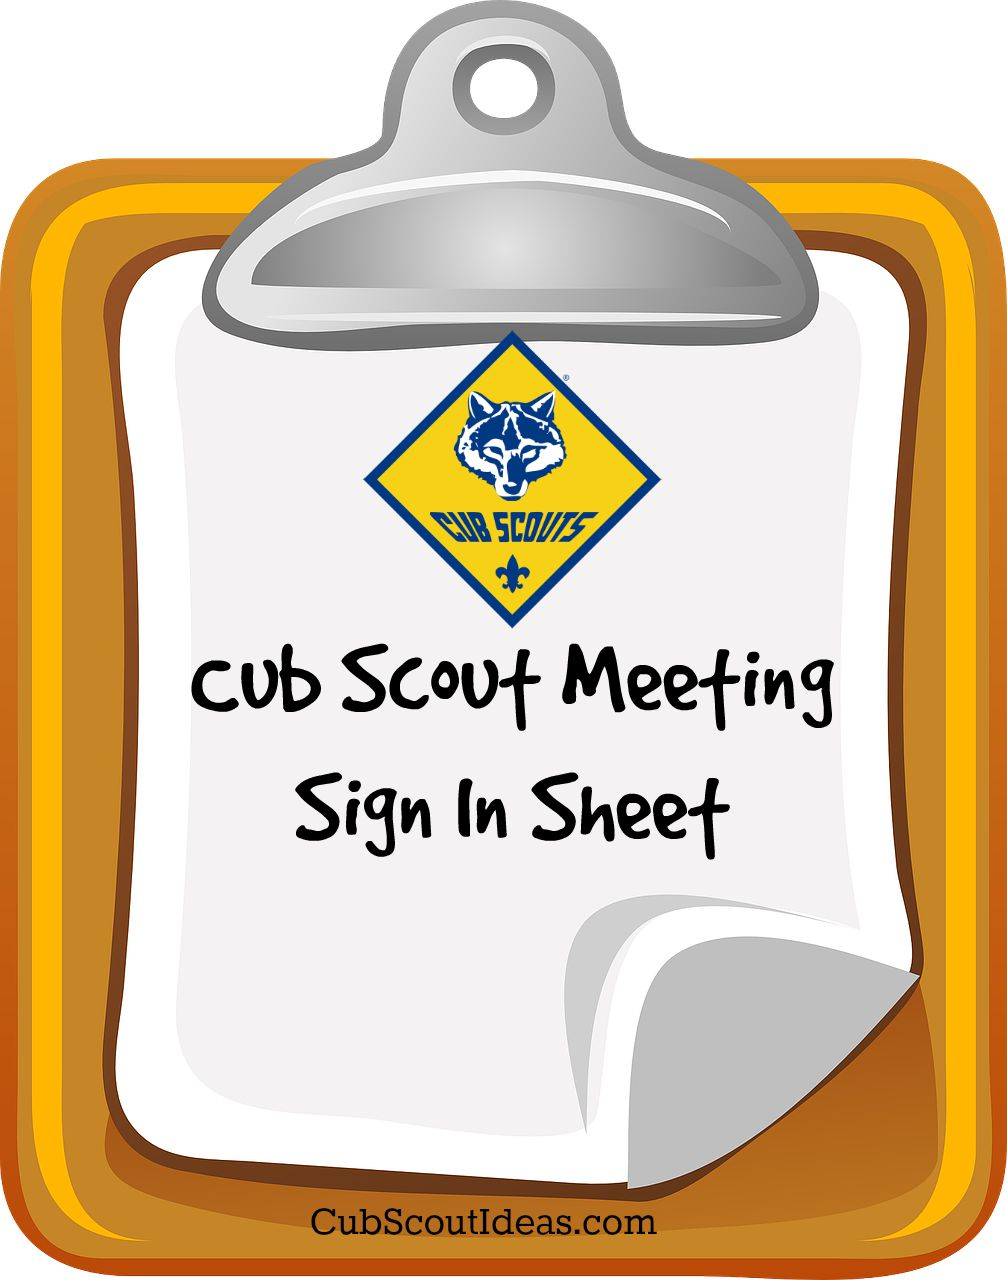 Attendance Sheet for Cub Scouts | Cub Scout Ideas - attendance sign in ...